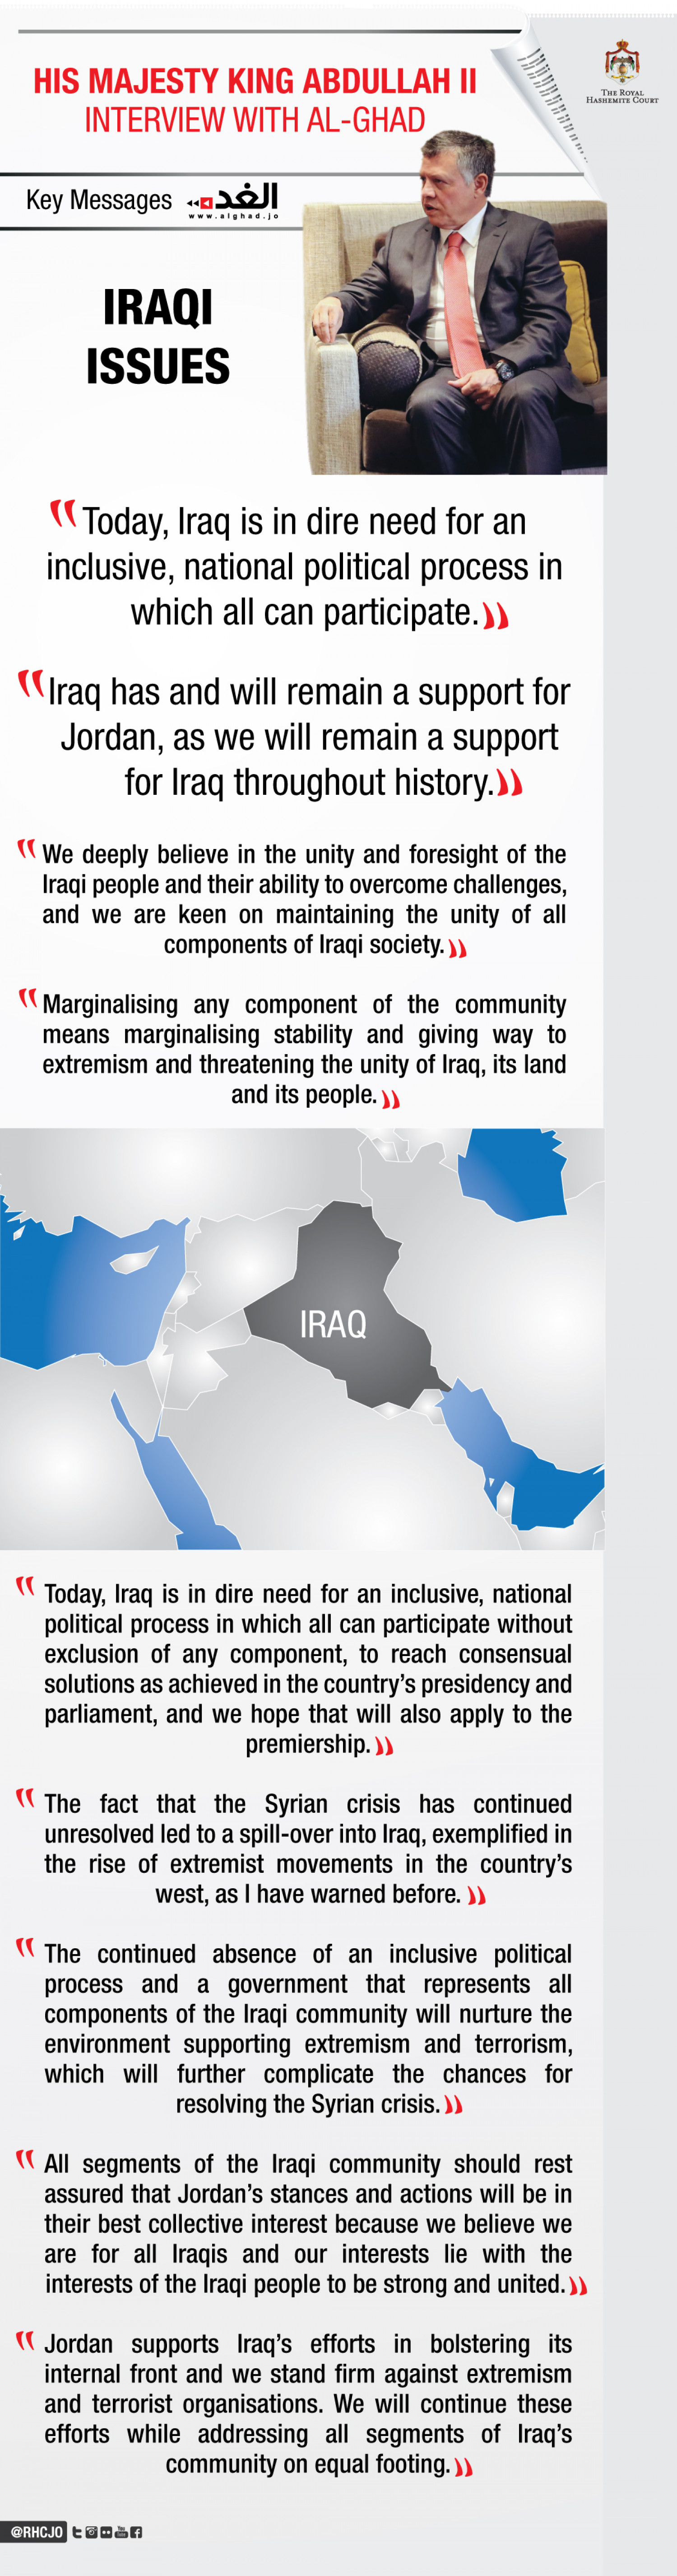 Iraqi Issues Infographic